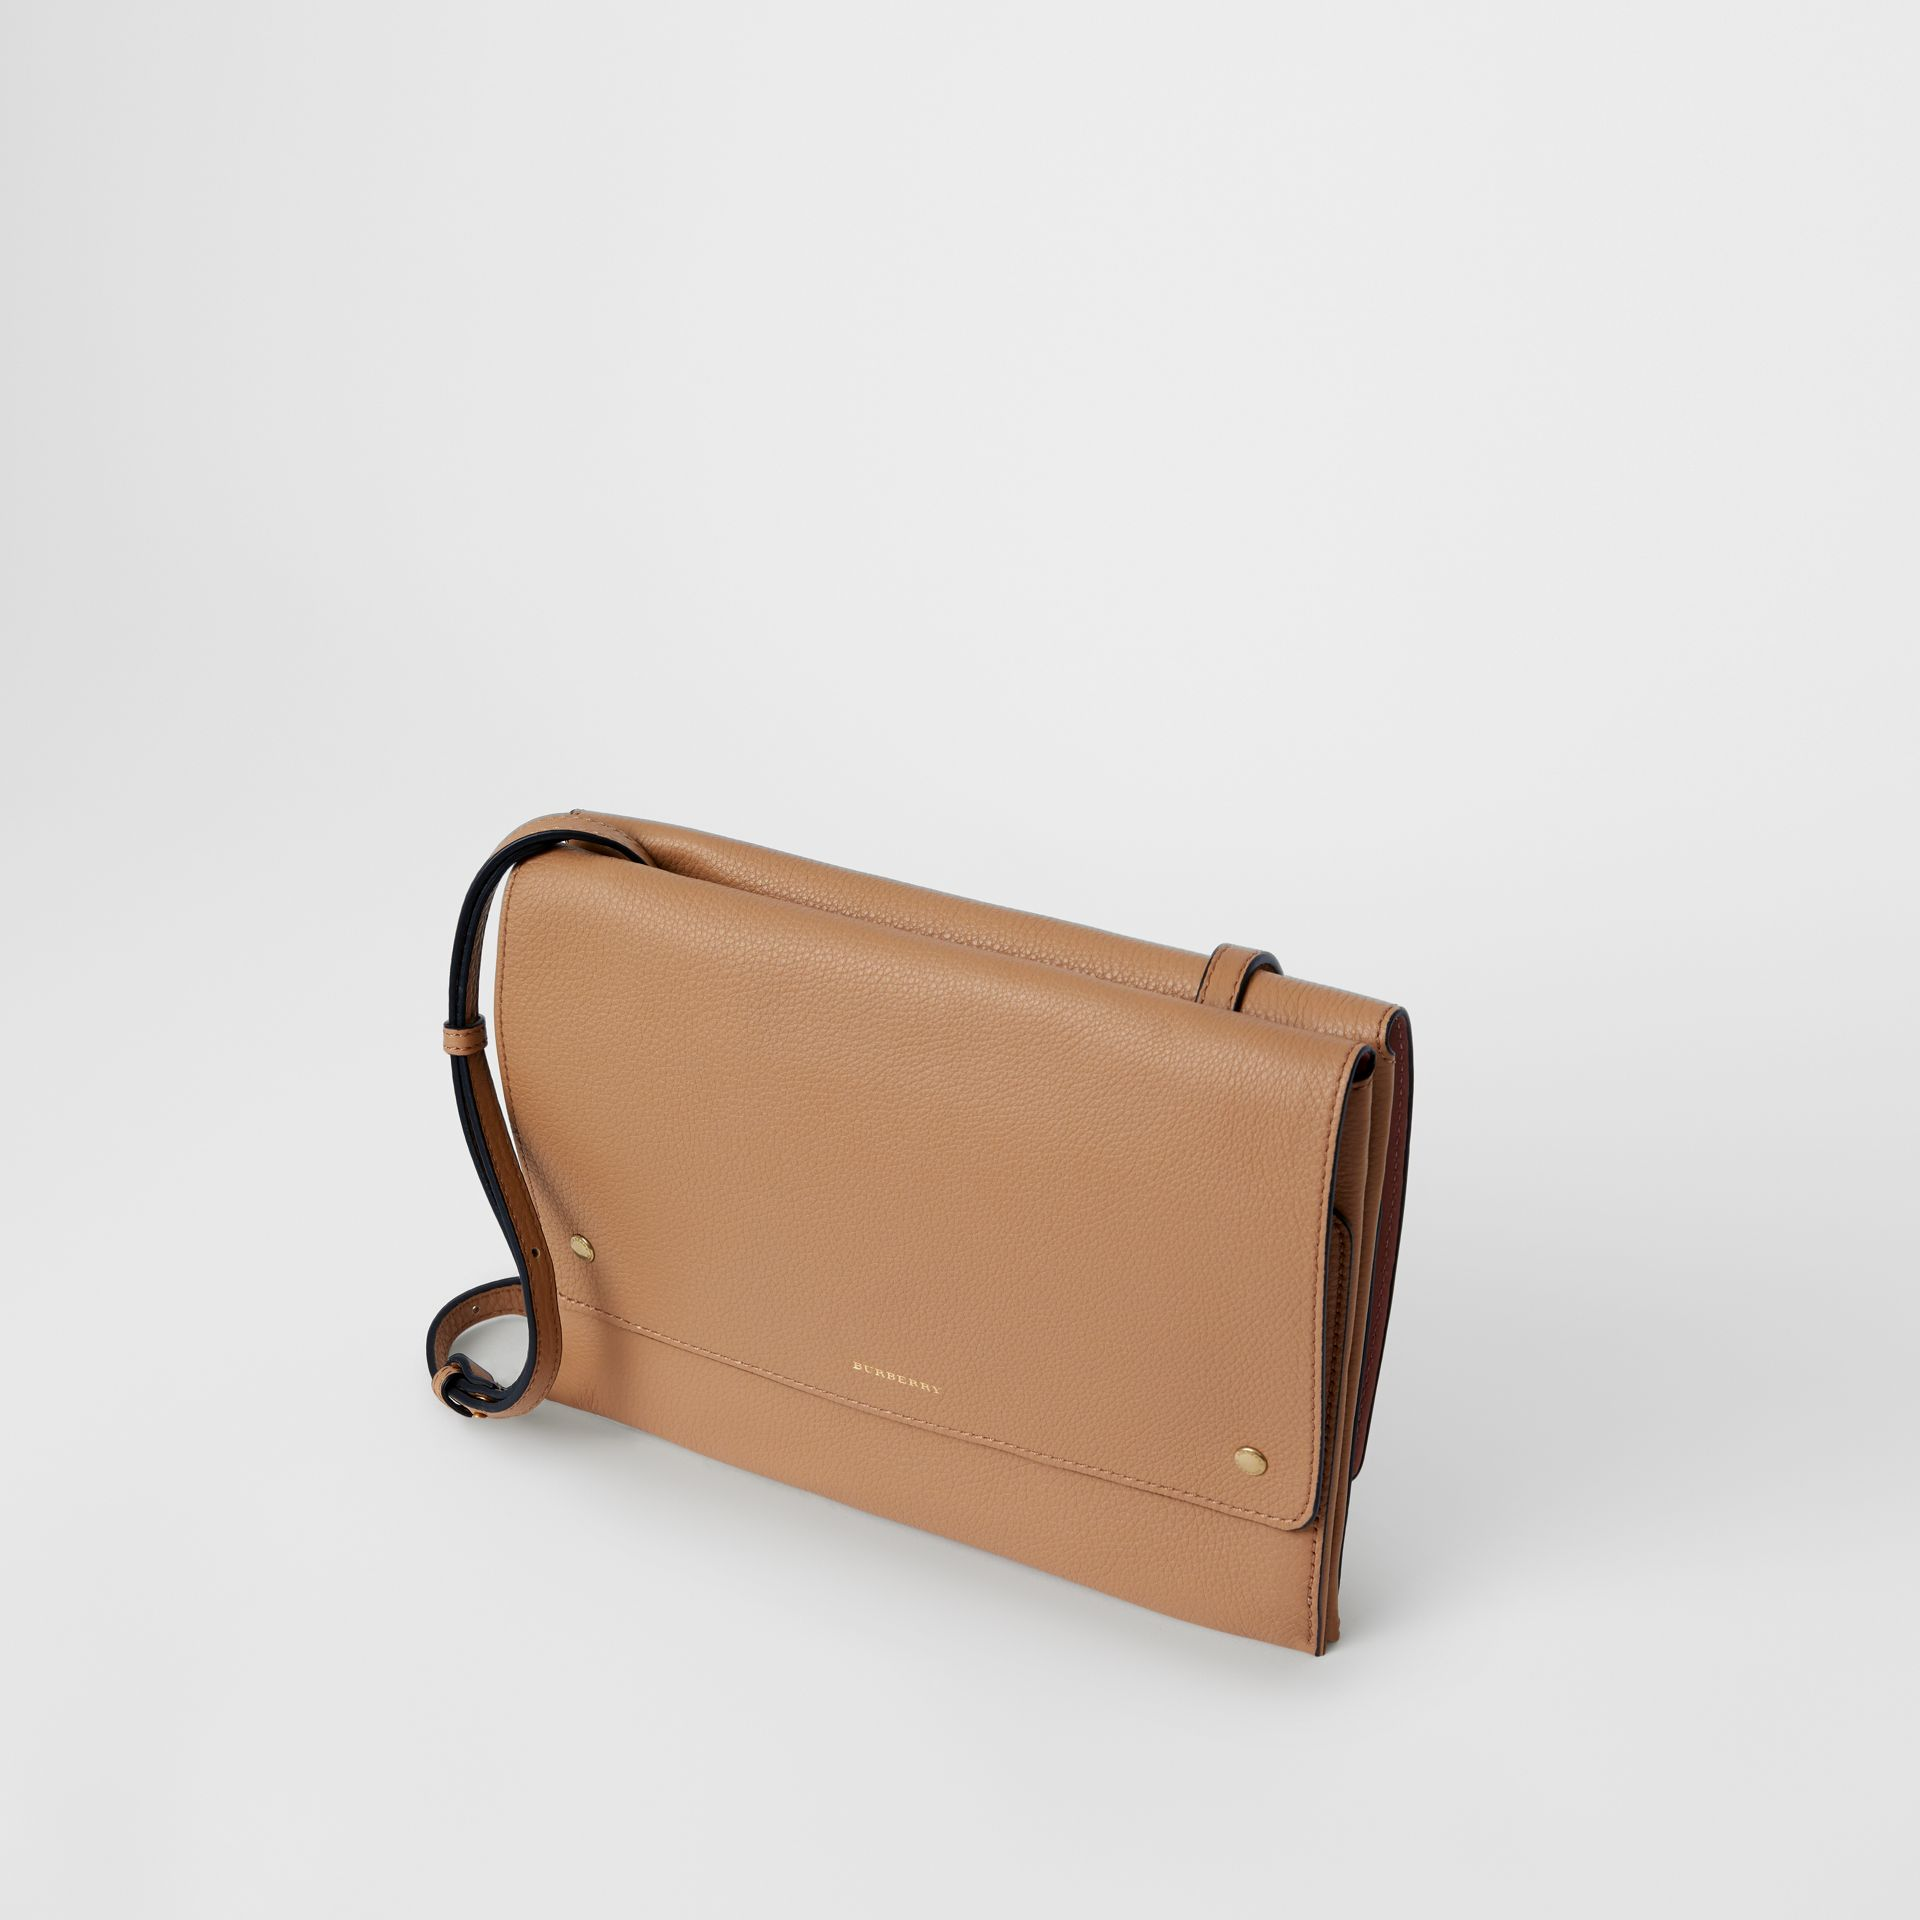 Leather Pouch with Detachable Strap in Light Camel - Women | Burberry - gallery image 4